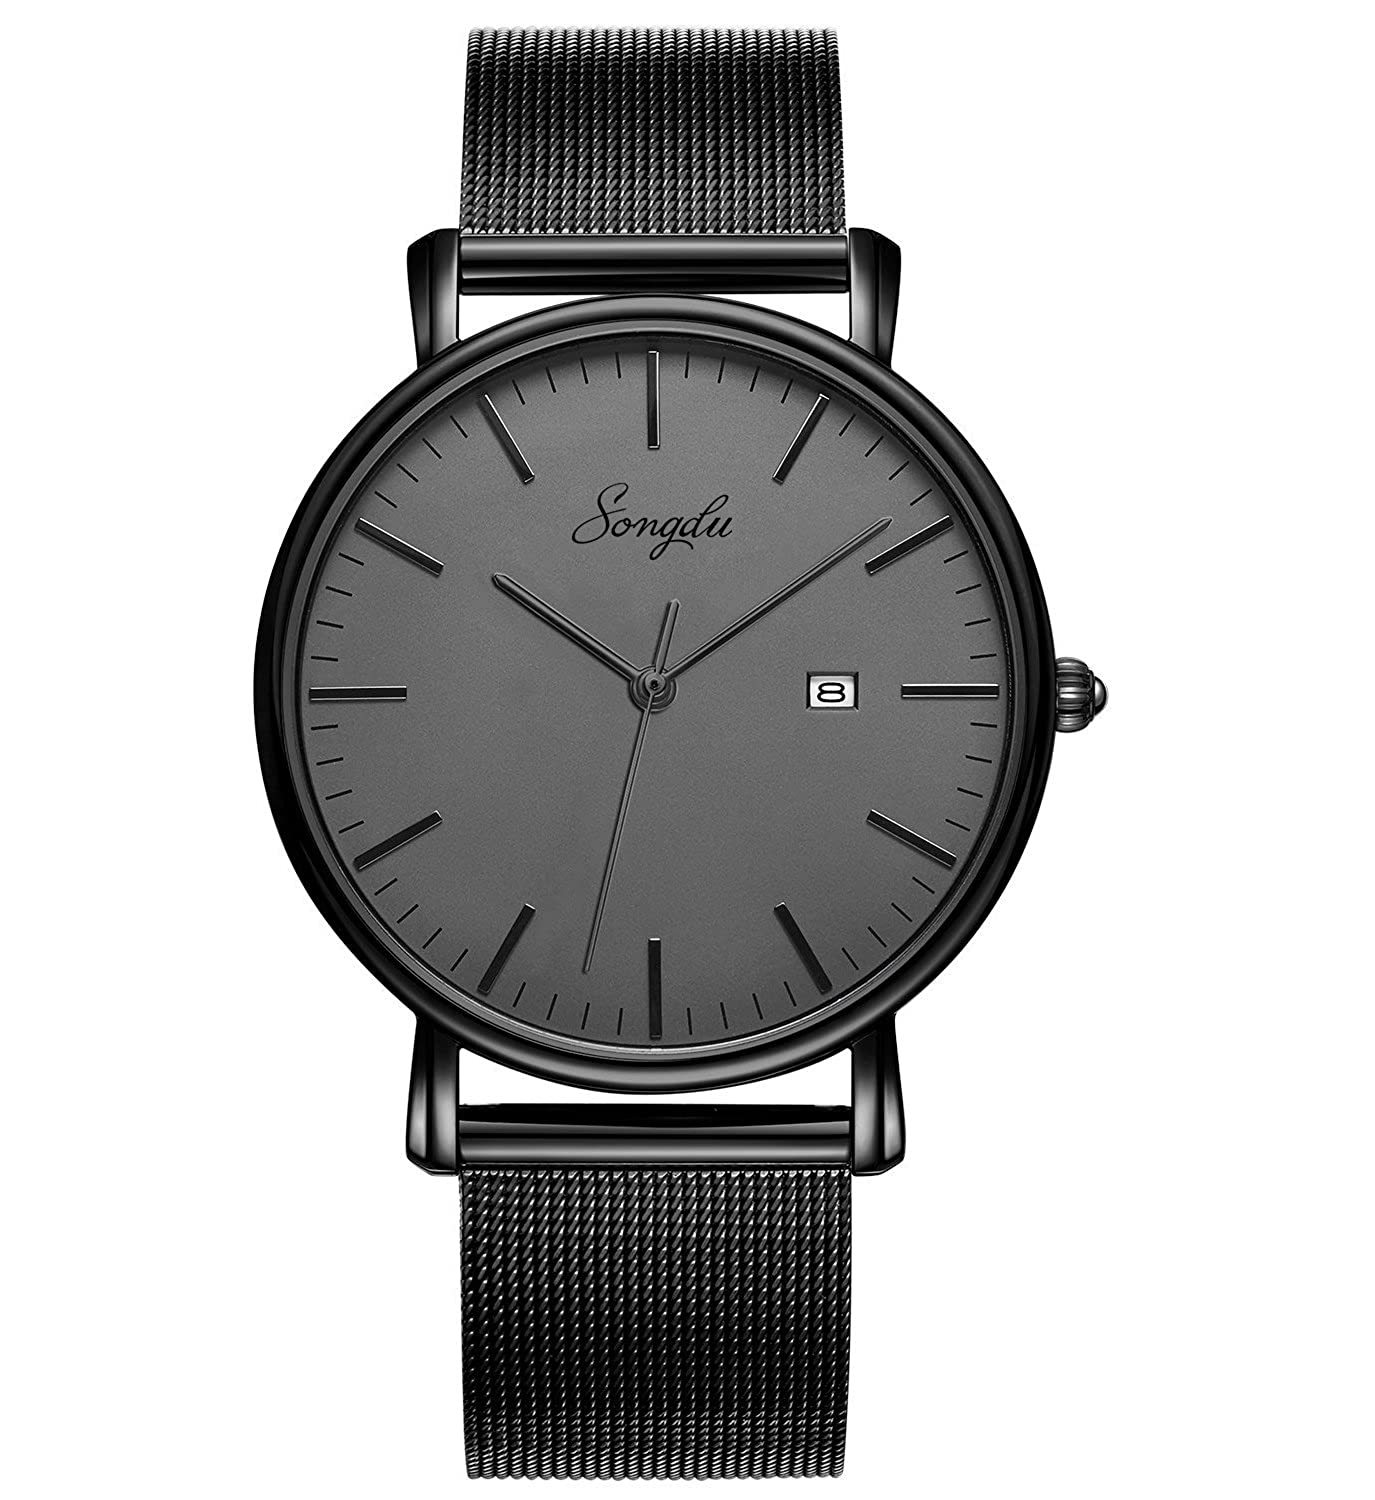 833b7b6545538 SONGDU Men's Fashion Date Slim Analog Quartz Watches Grey Dial with  Stainless Steel Black Mesh Band